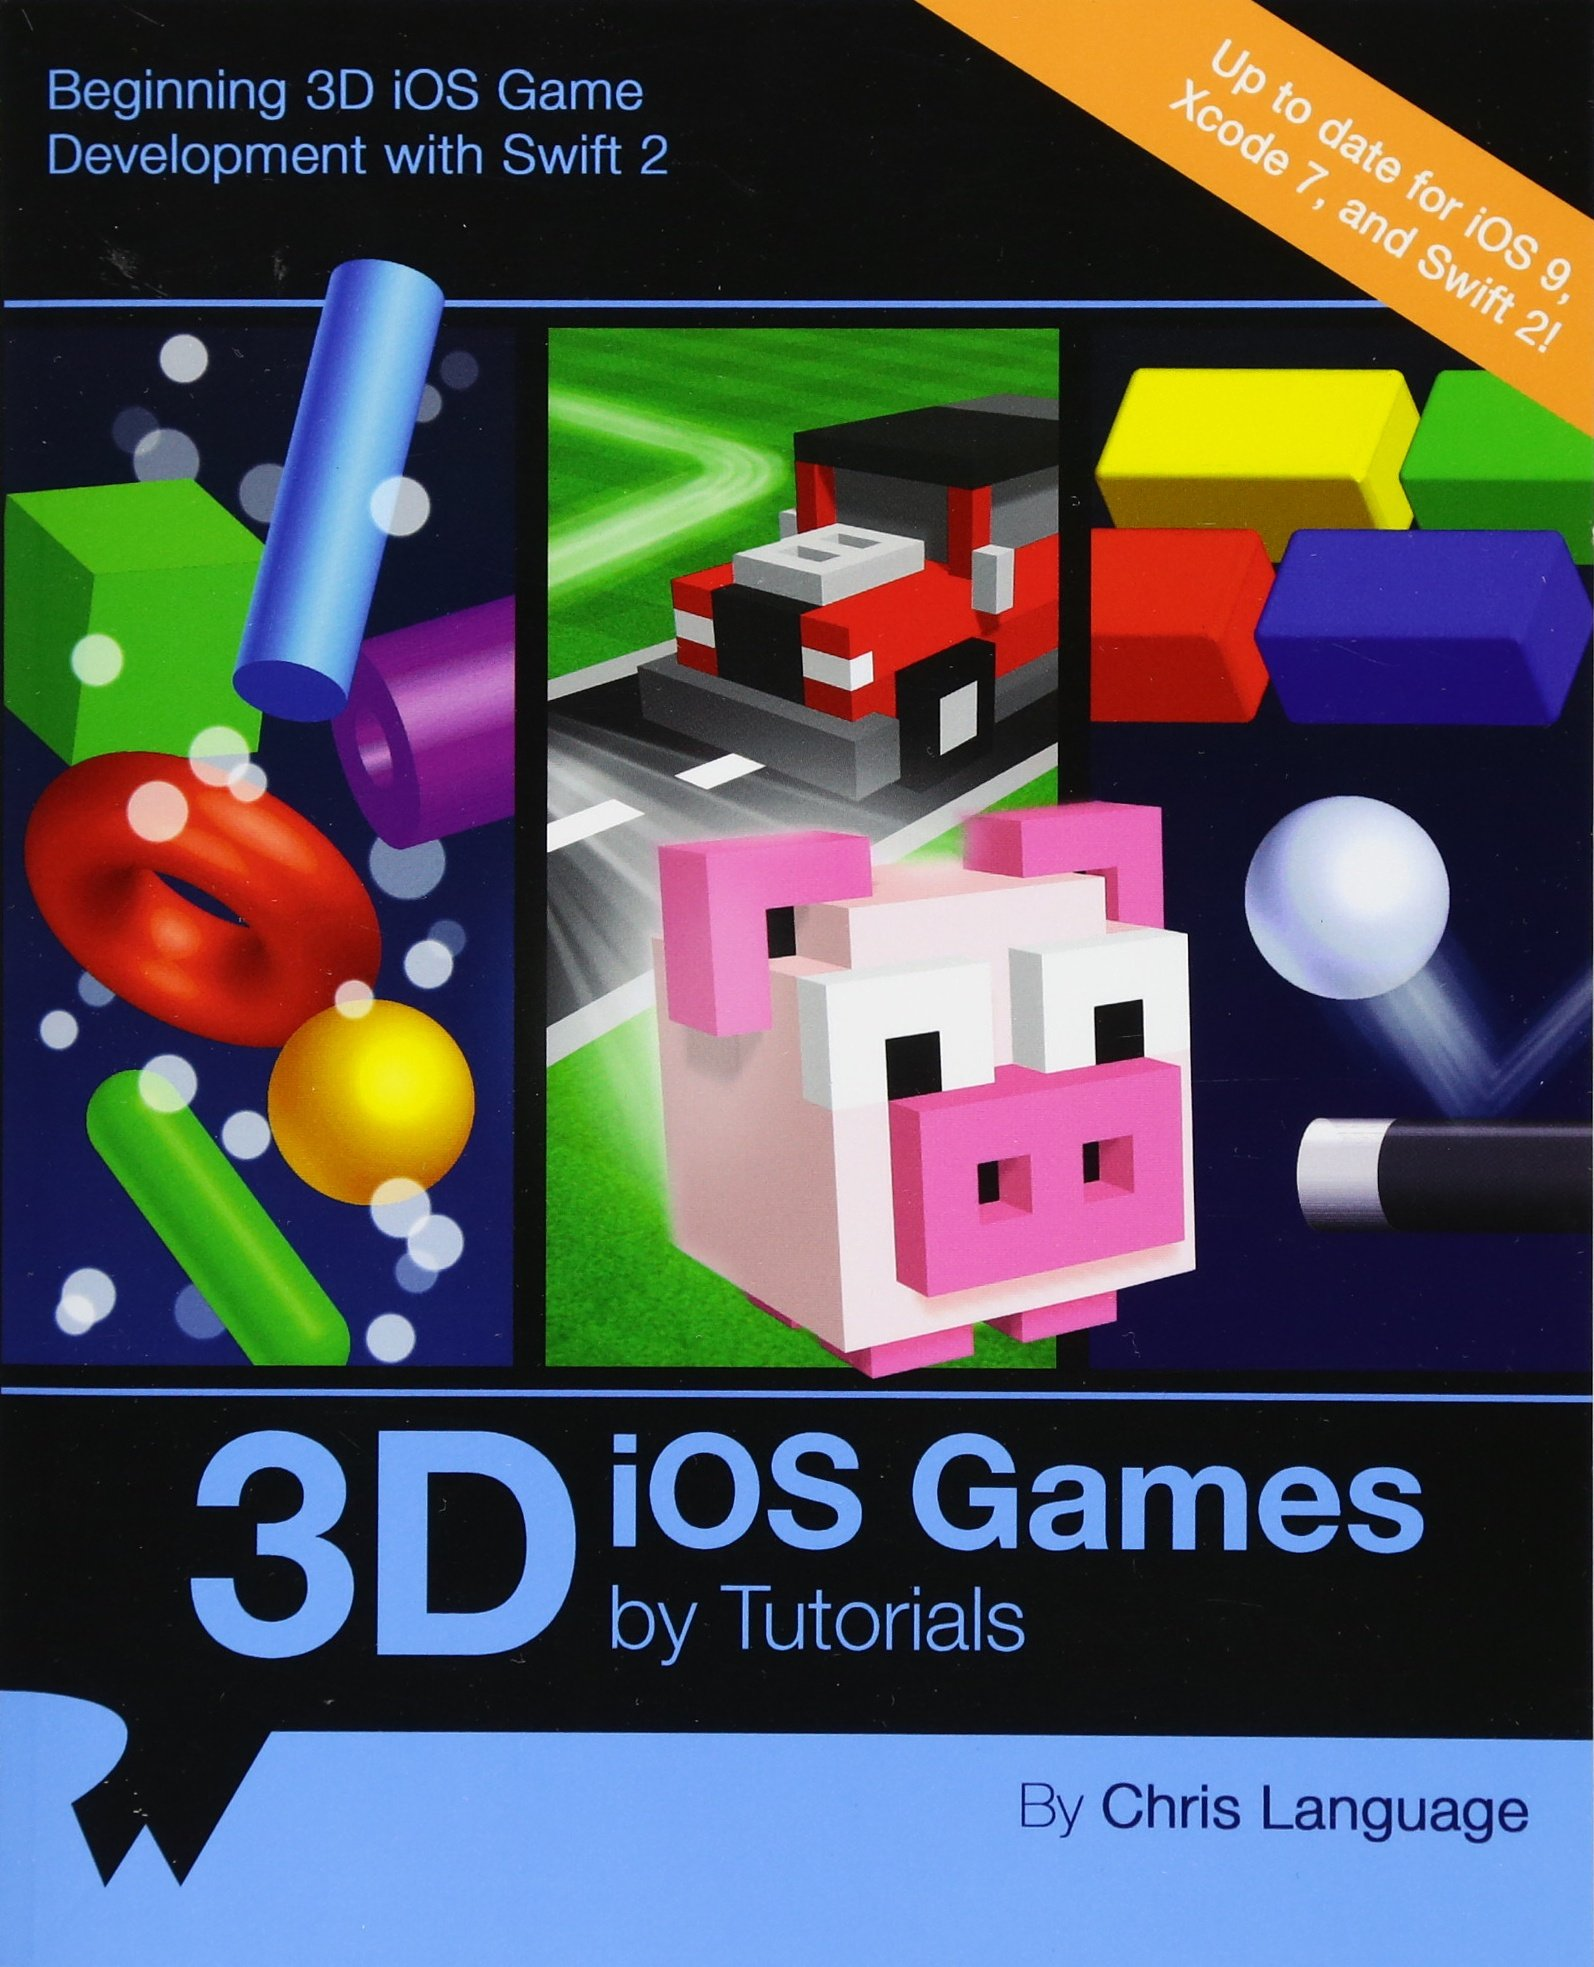 Tvos video tutorials for game development with swift 2 and sprite.